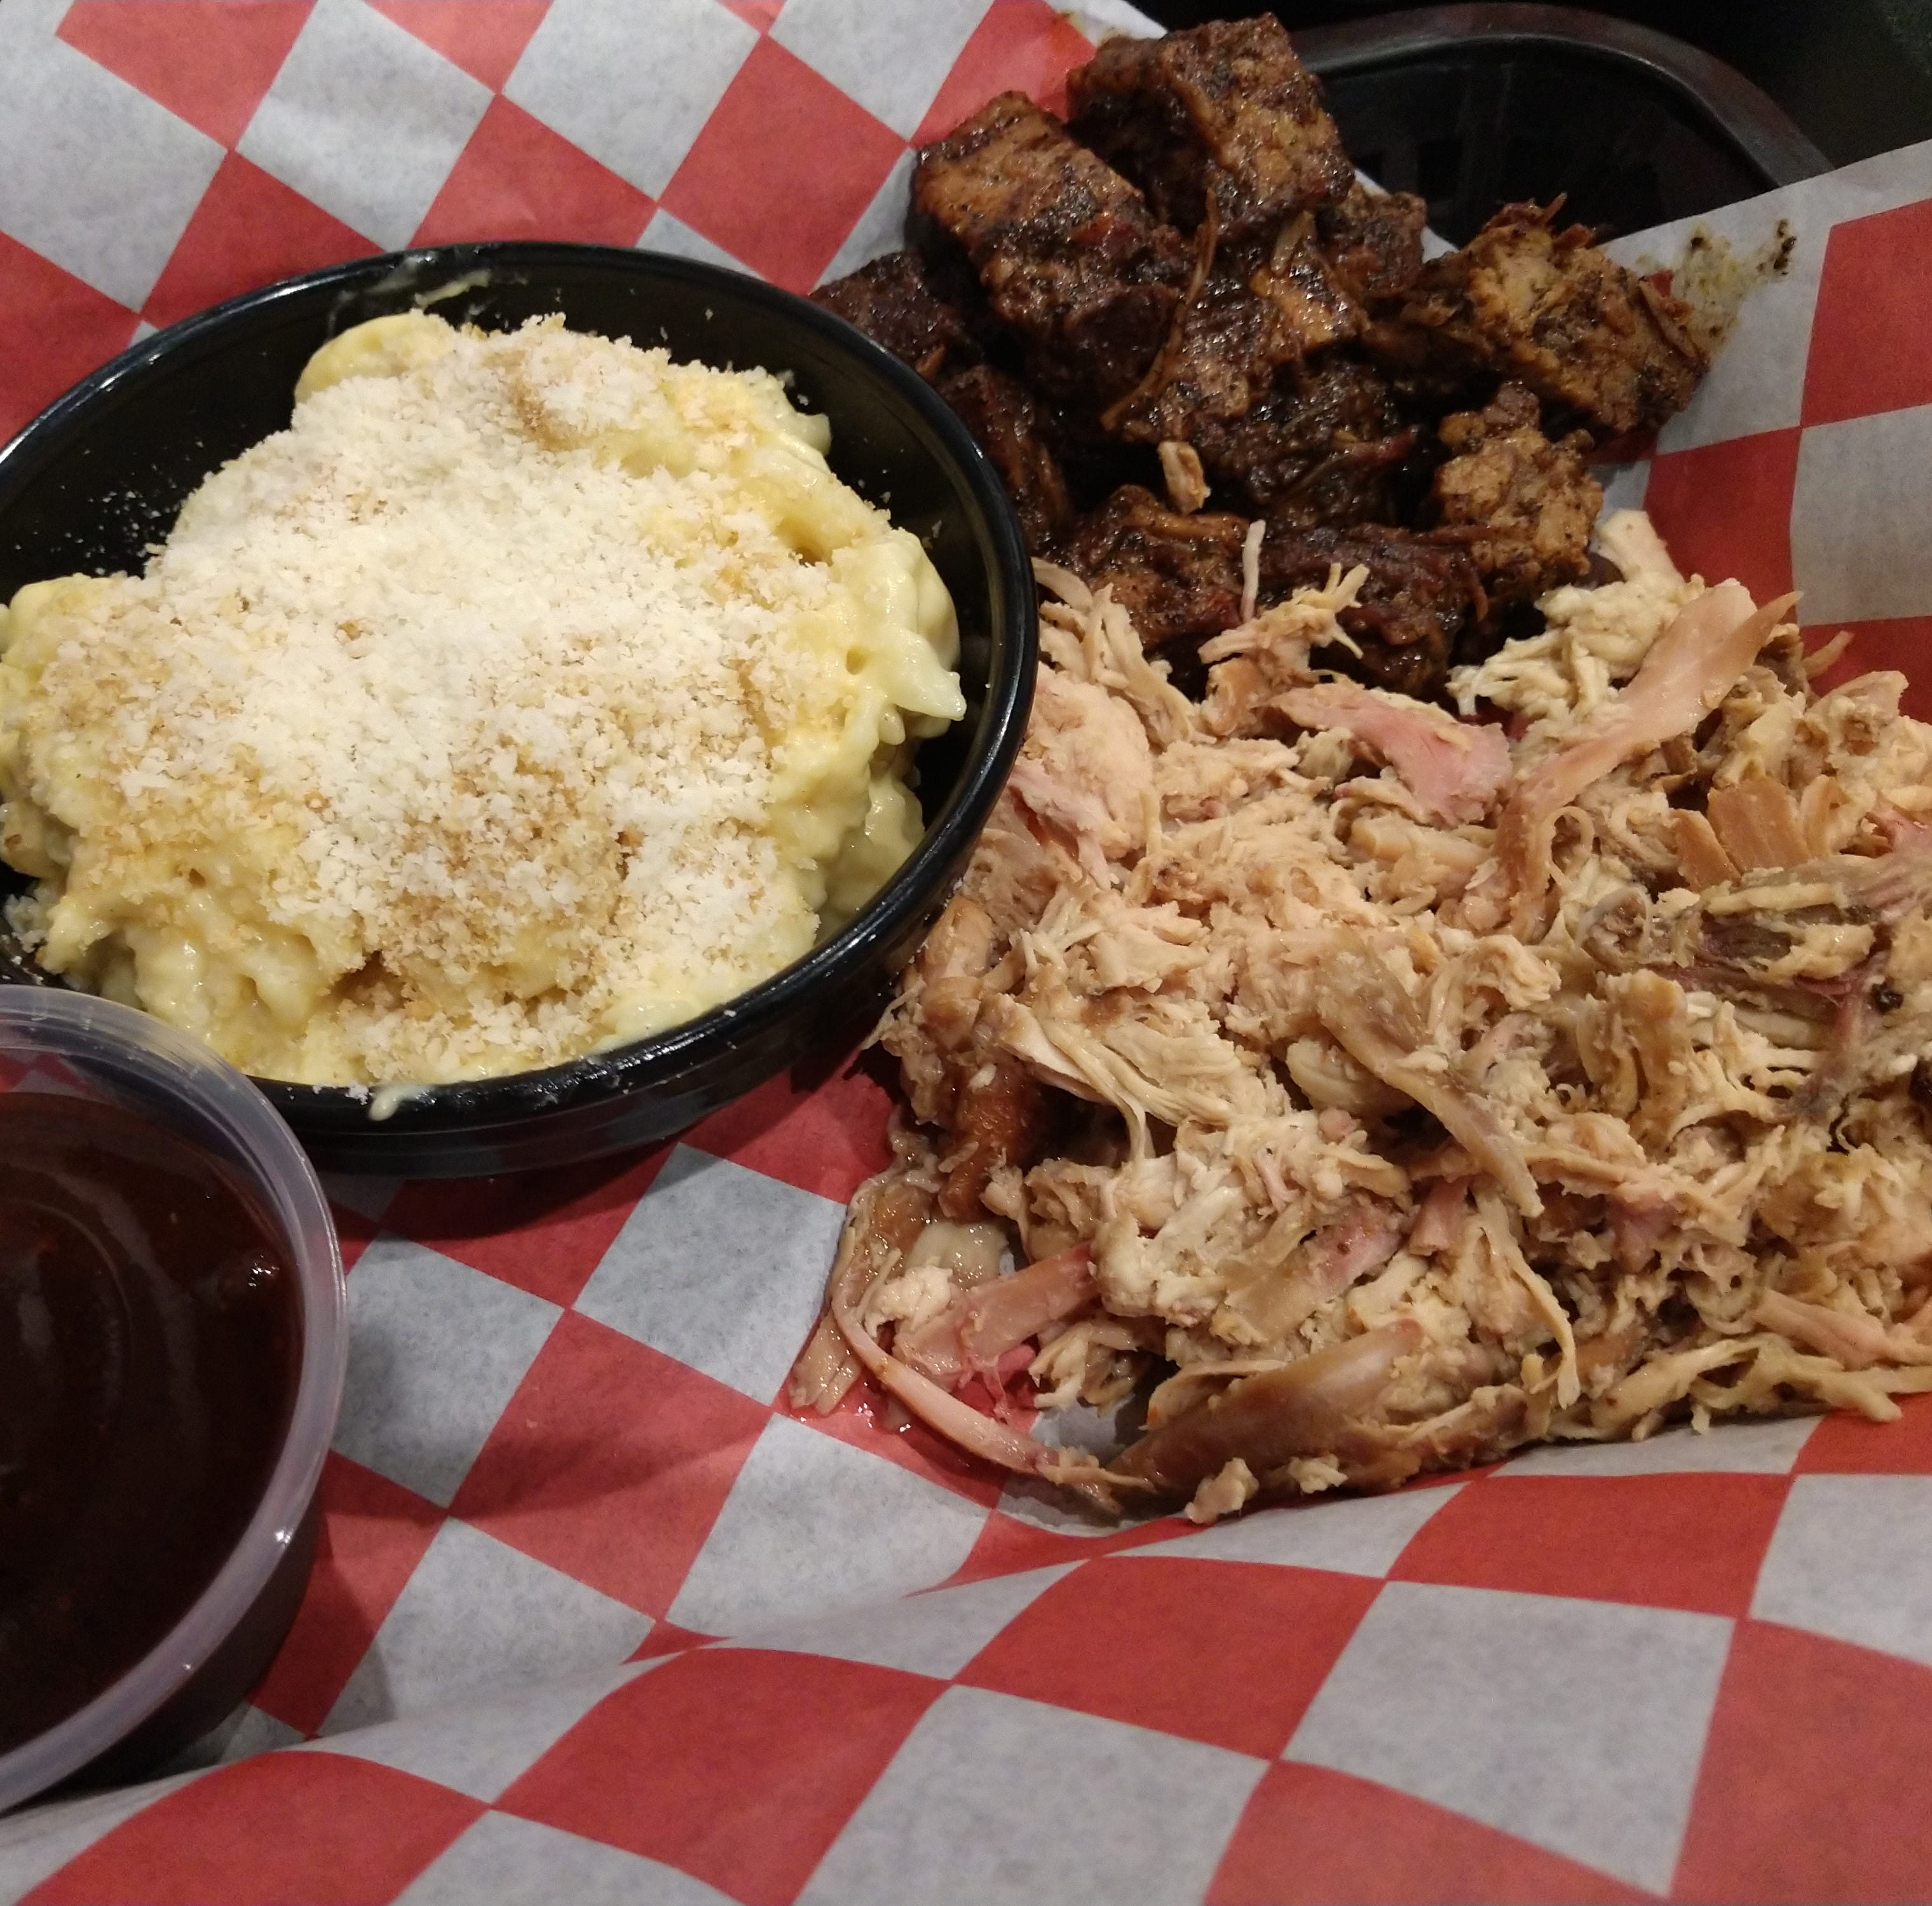 Rolling Smoke Barbeque: The metro's latest culinary contender